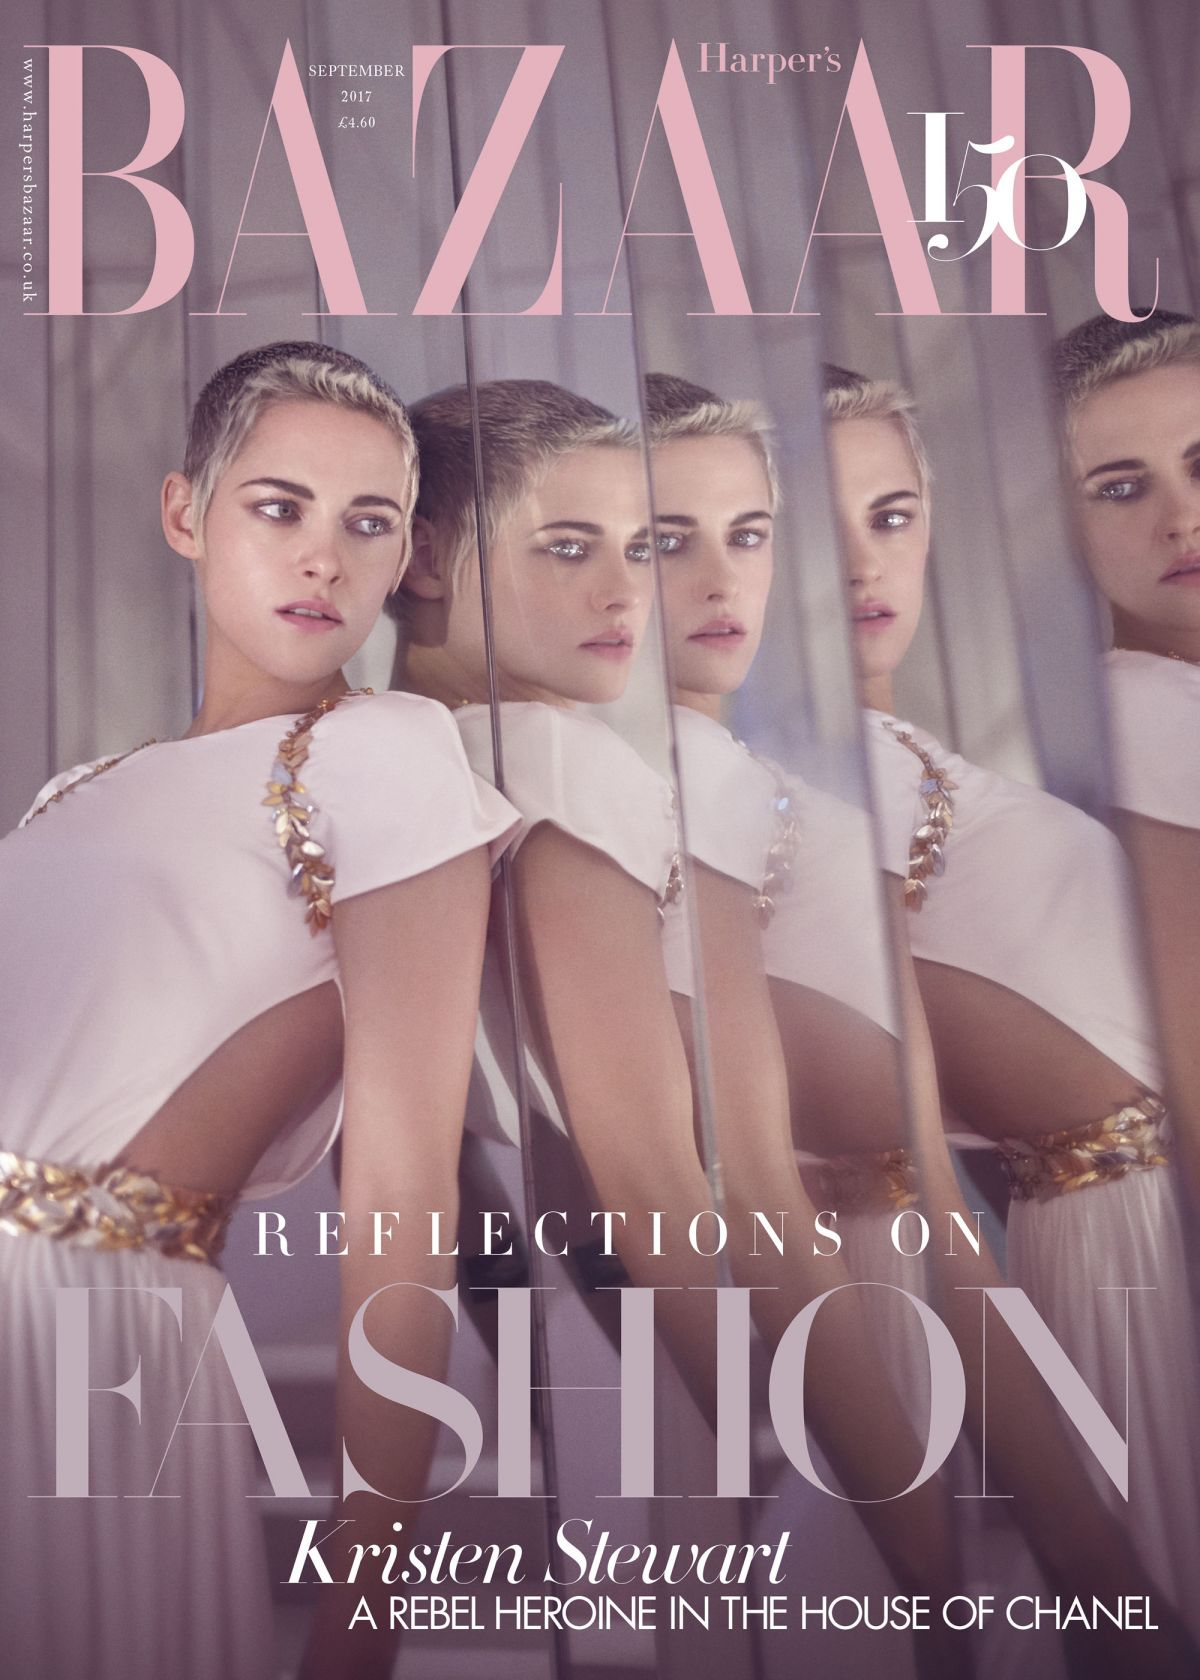 Kristen Stewart For Harper's Bazaar UK September 2017   kristen-stewart-for-harper-s-bazaar-uk-september-2017_2